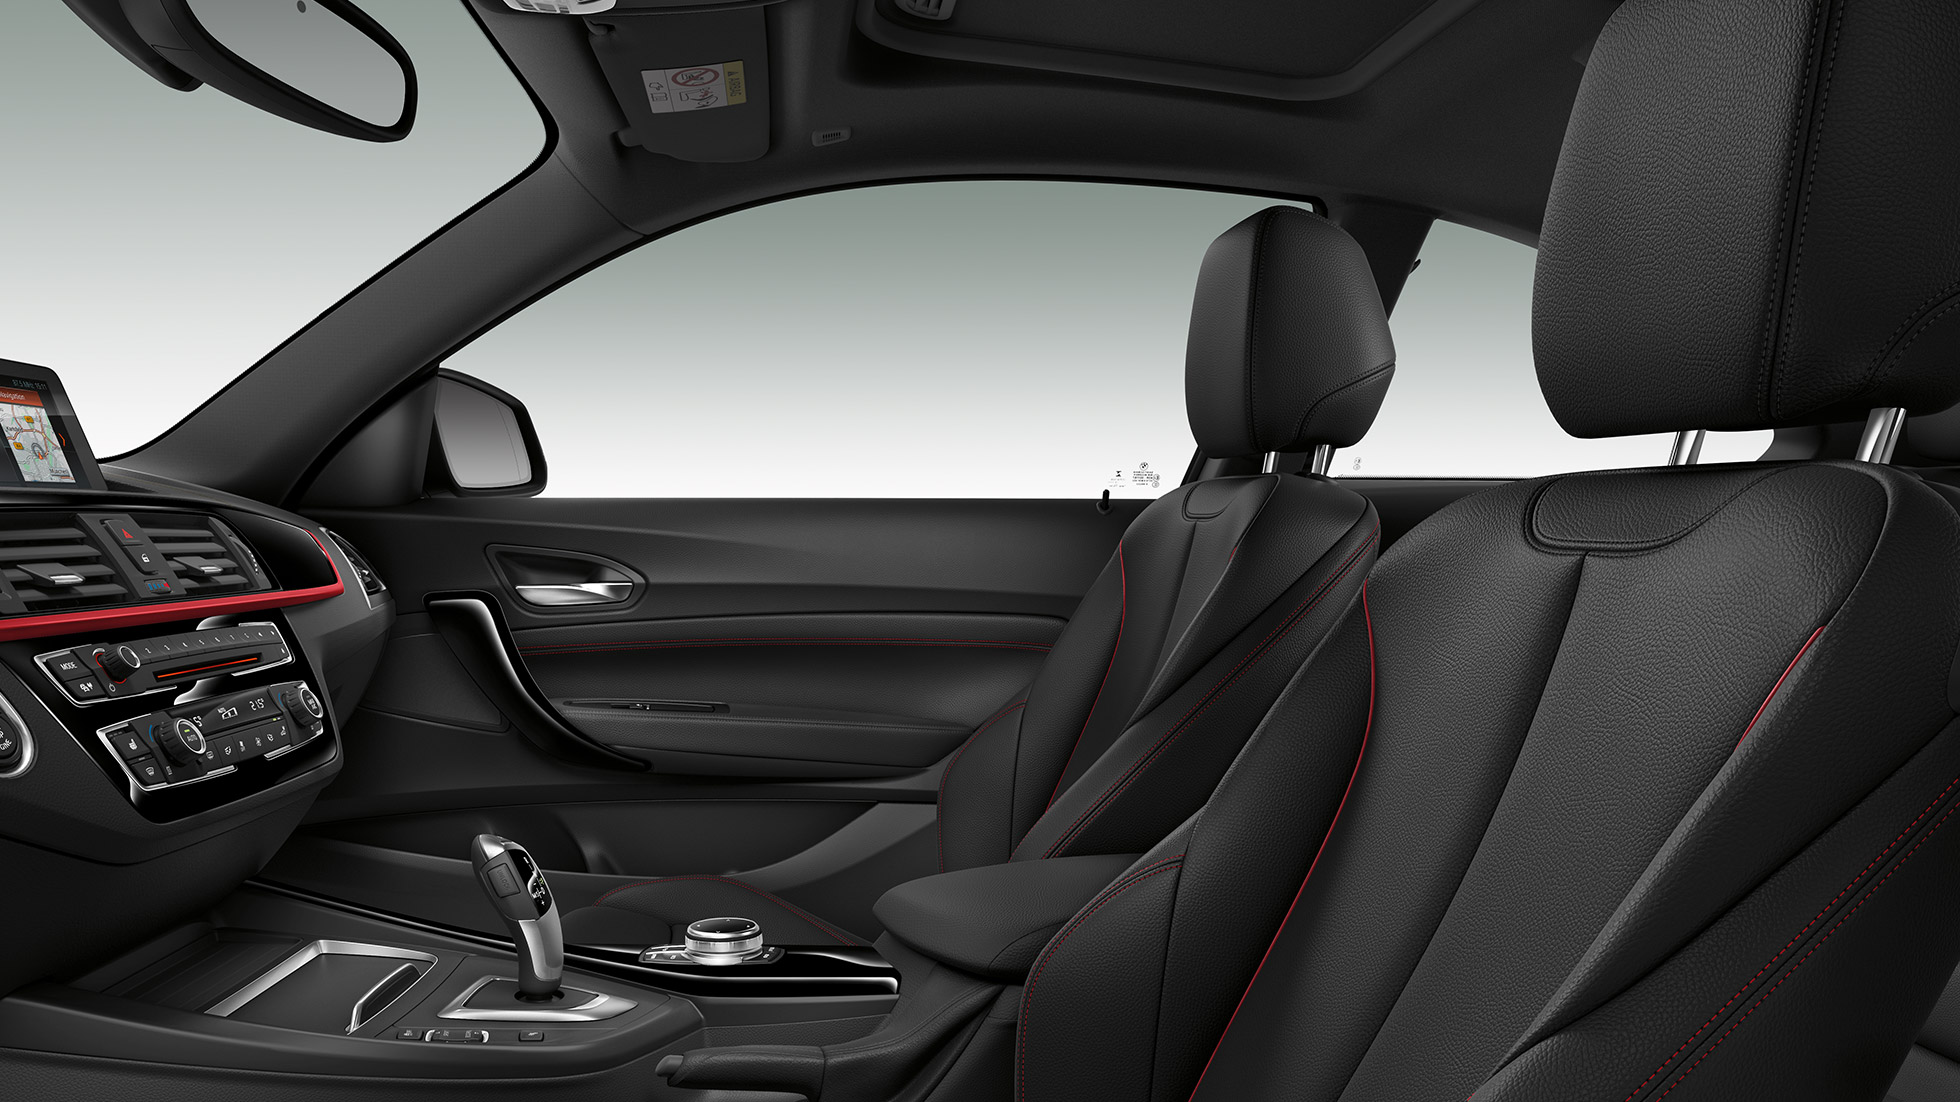 BMW 2 Series Coupé, Model Sport Line interior